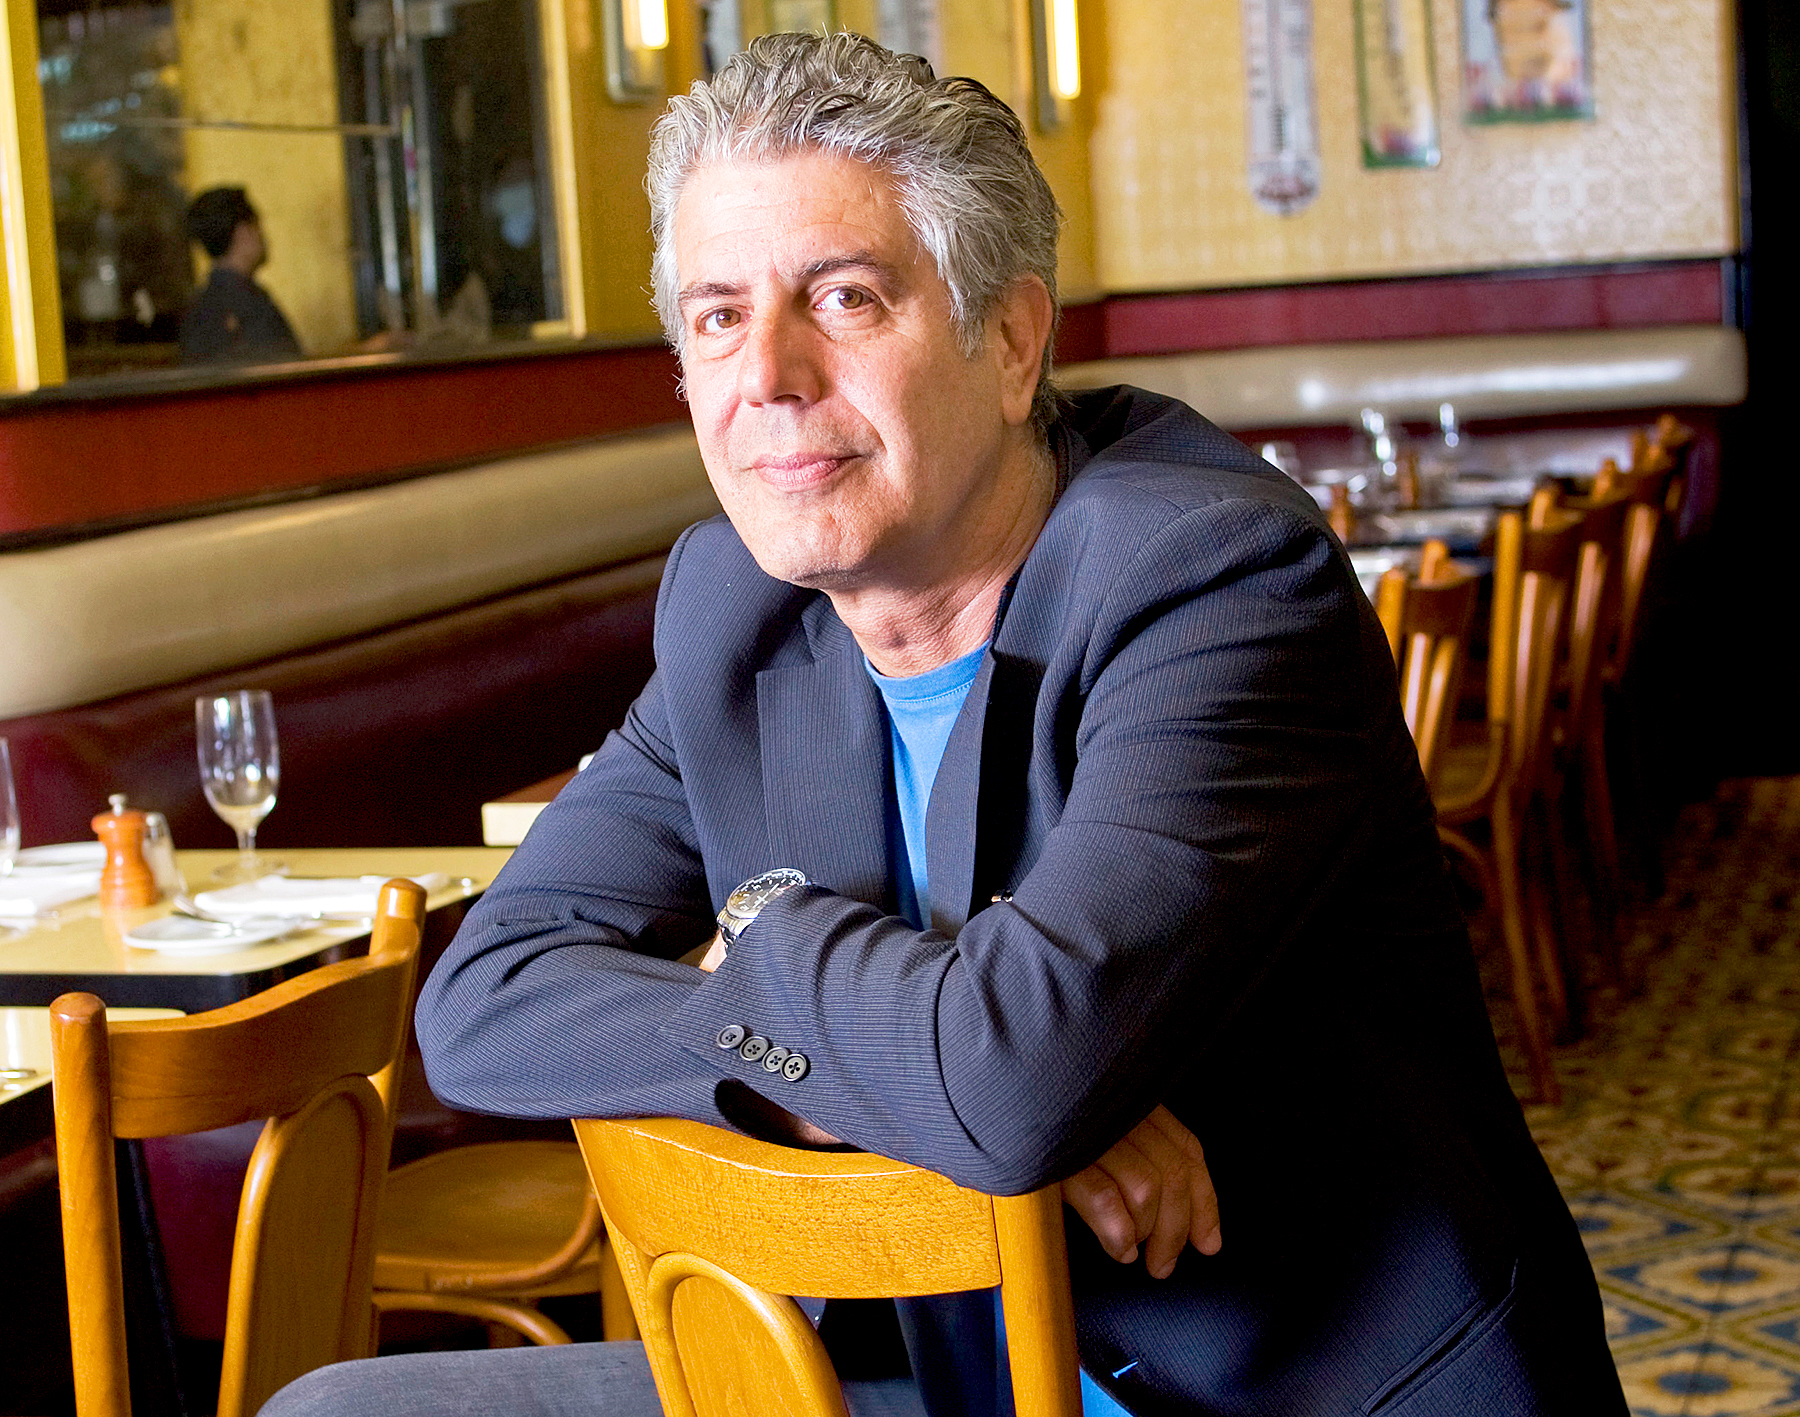 Anthony Bourdain's 11-Year-Old Daughter Will Inherit Most Of His Estate